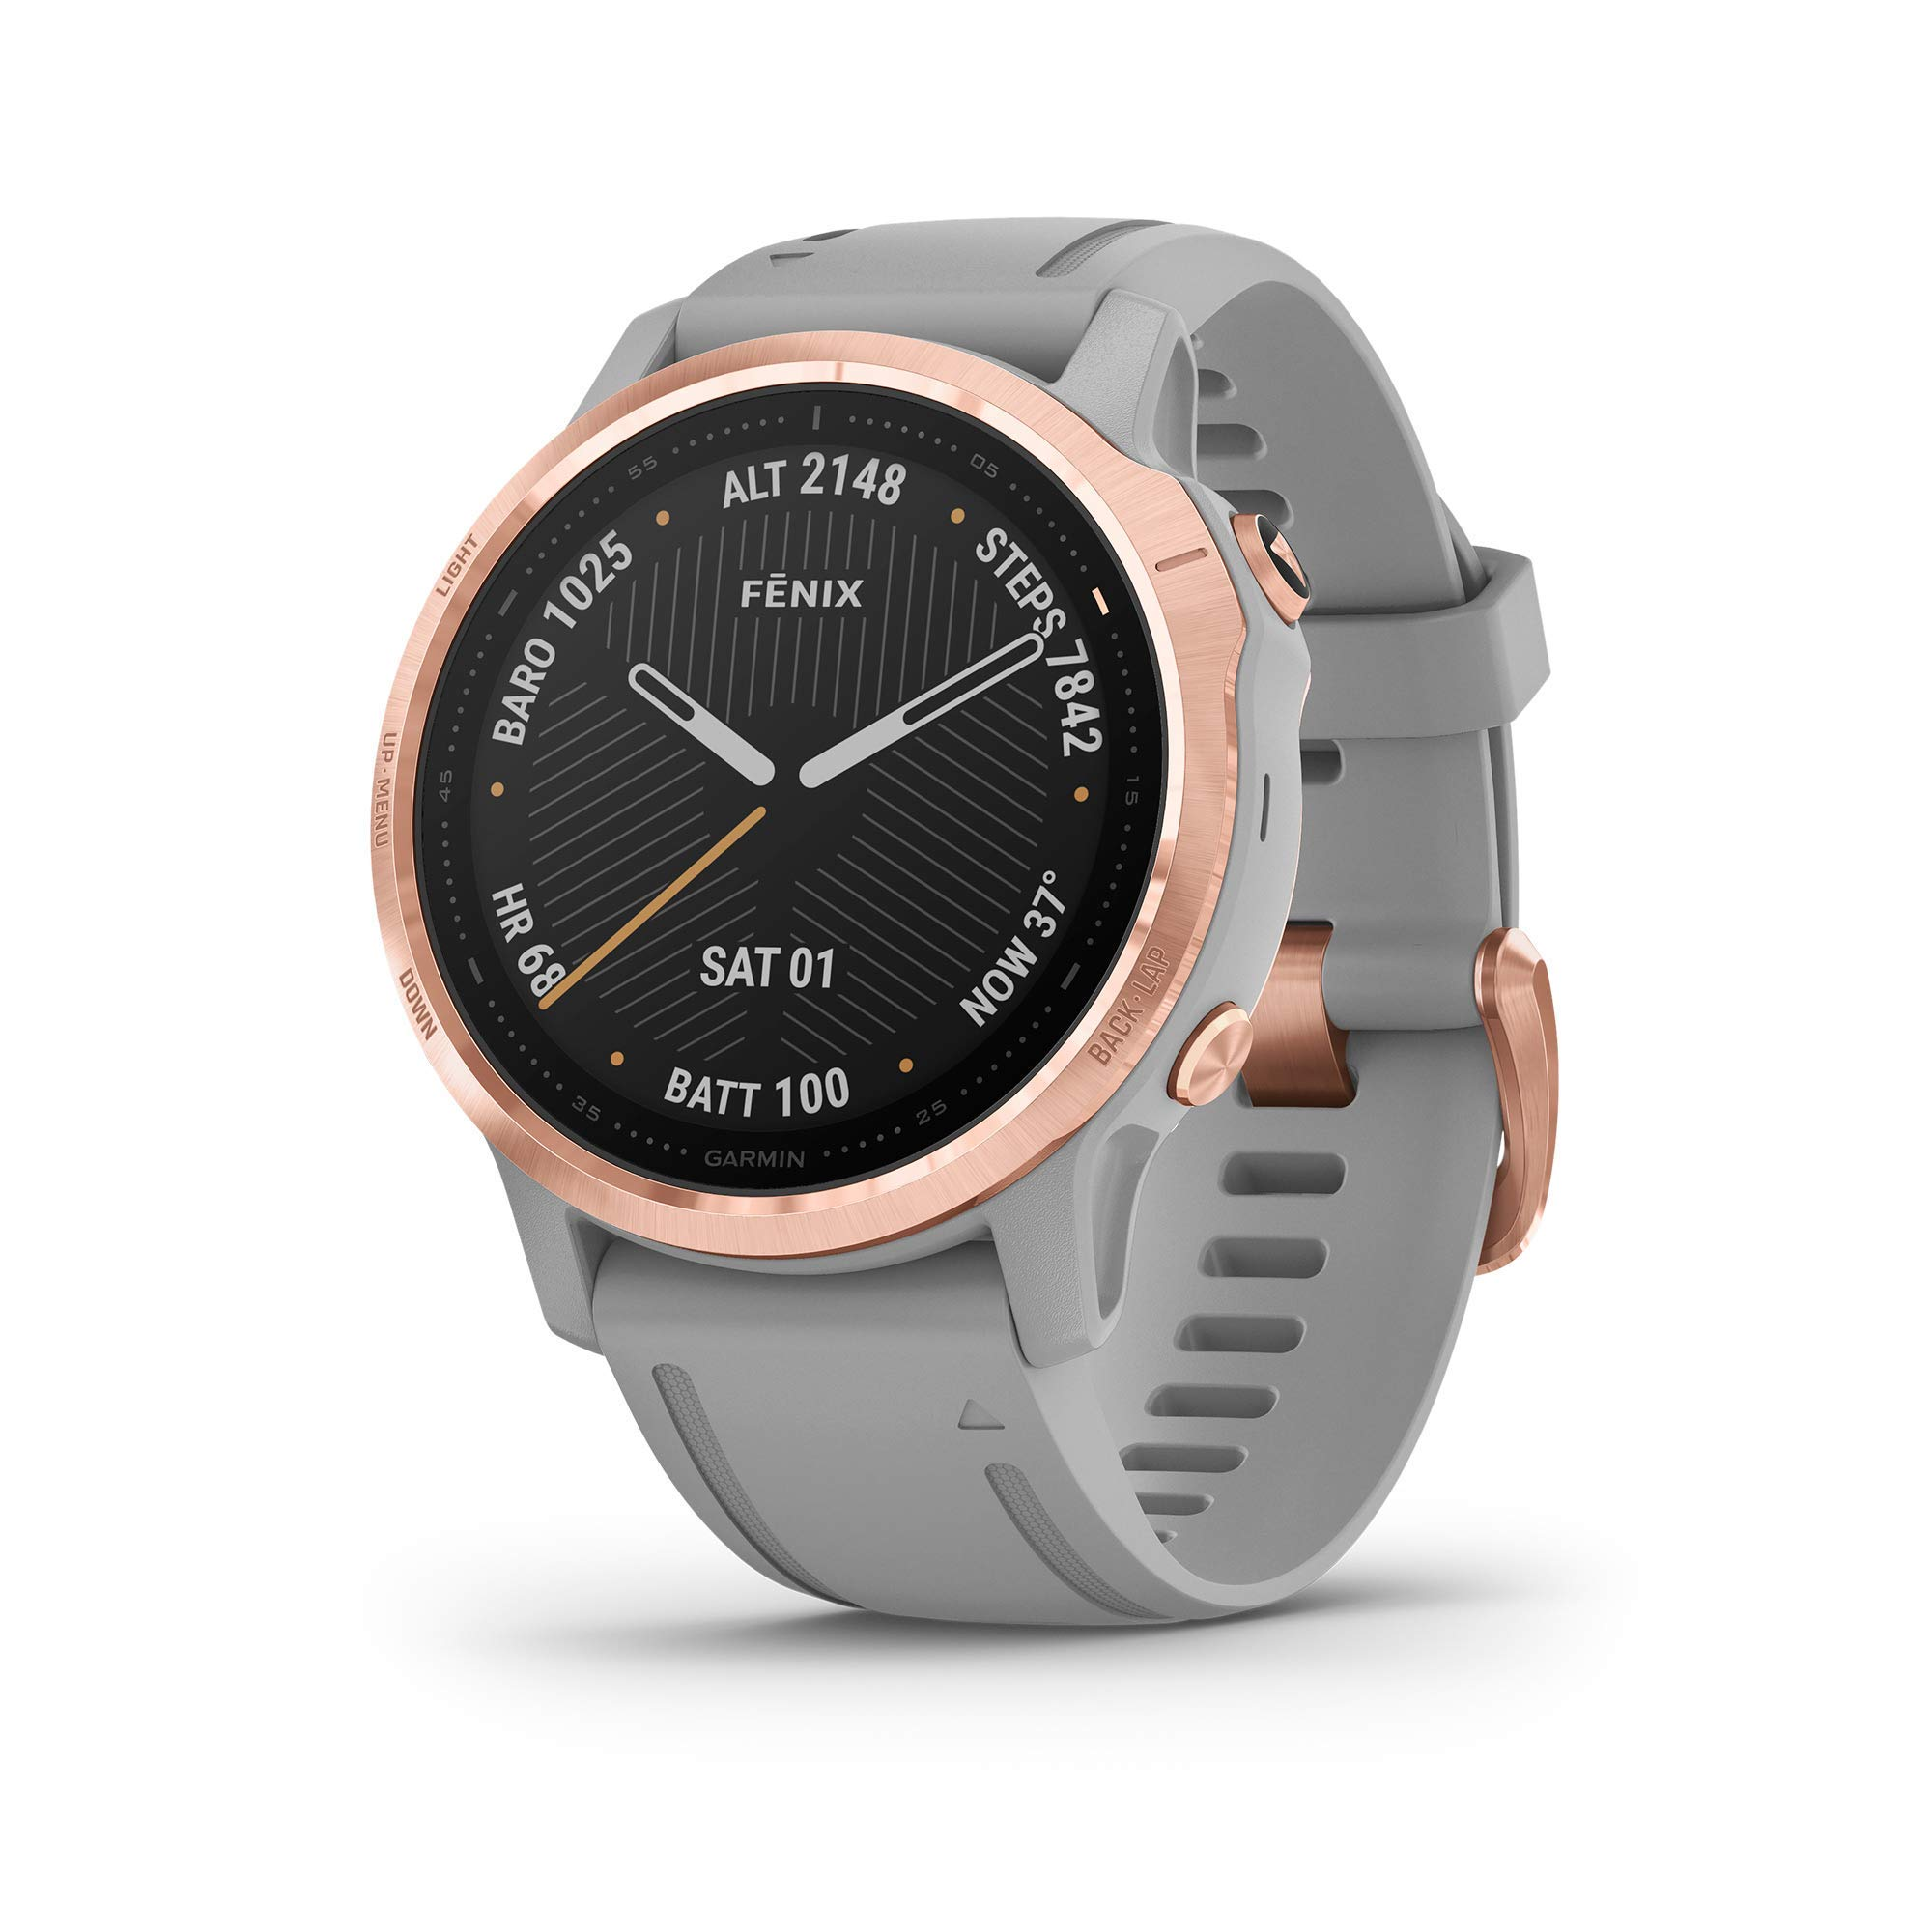 Garmin Fenix 6S Sapphire, Premium Multisport GPS Watch, Smaller-Sized, features Mapping, Music, Grade-Adjusted Pace Guidance and Pulse Ox Sensors, Rose Gold with Gray Band (Renewed) by Garmin